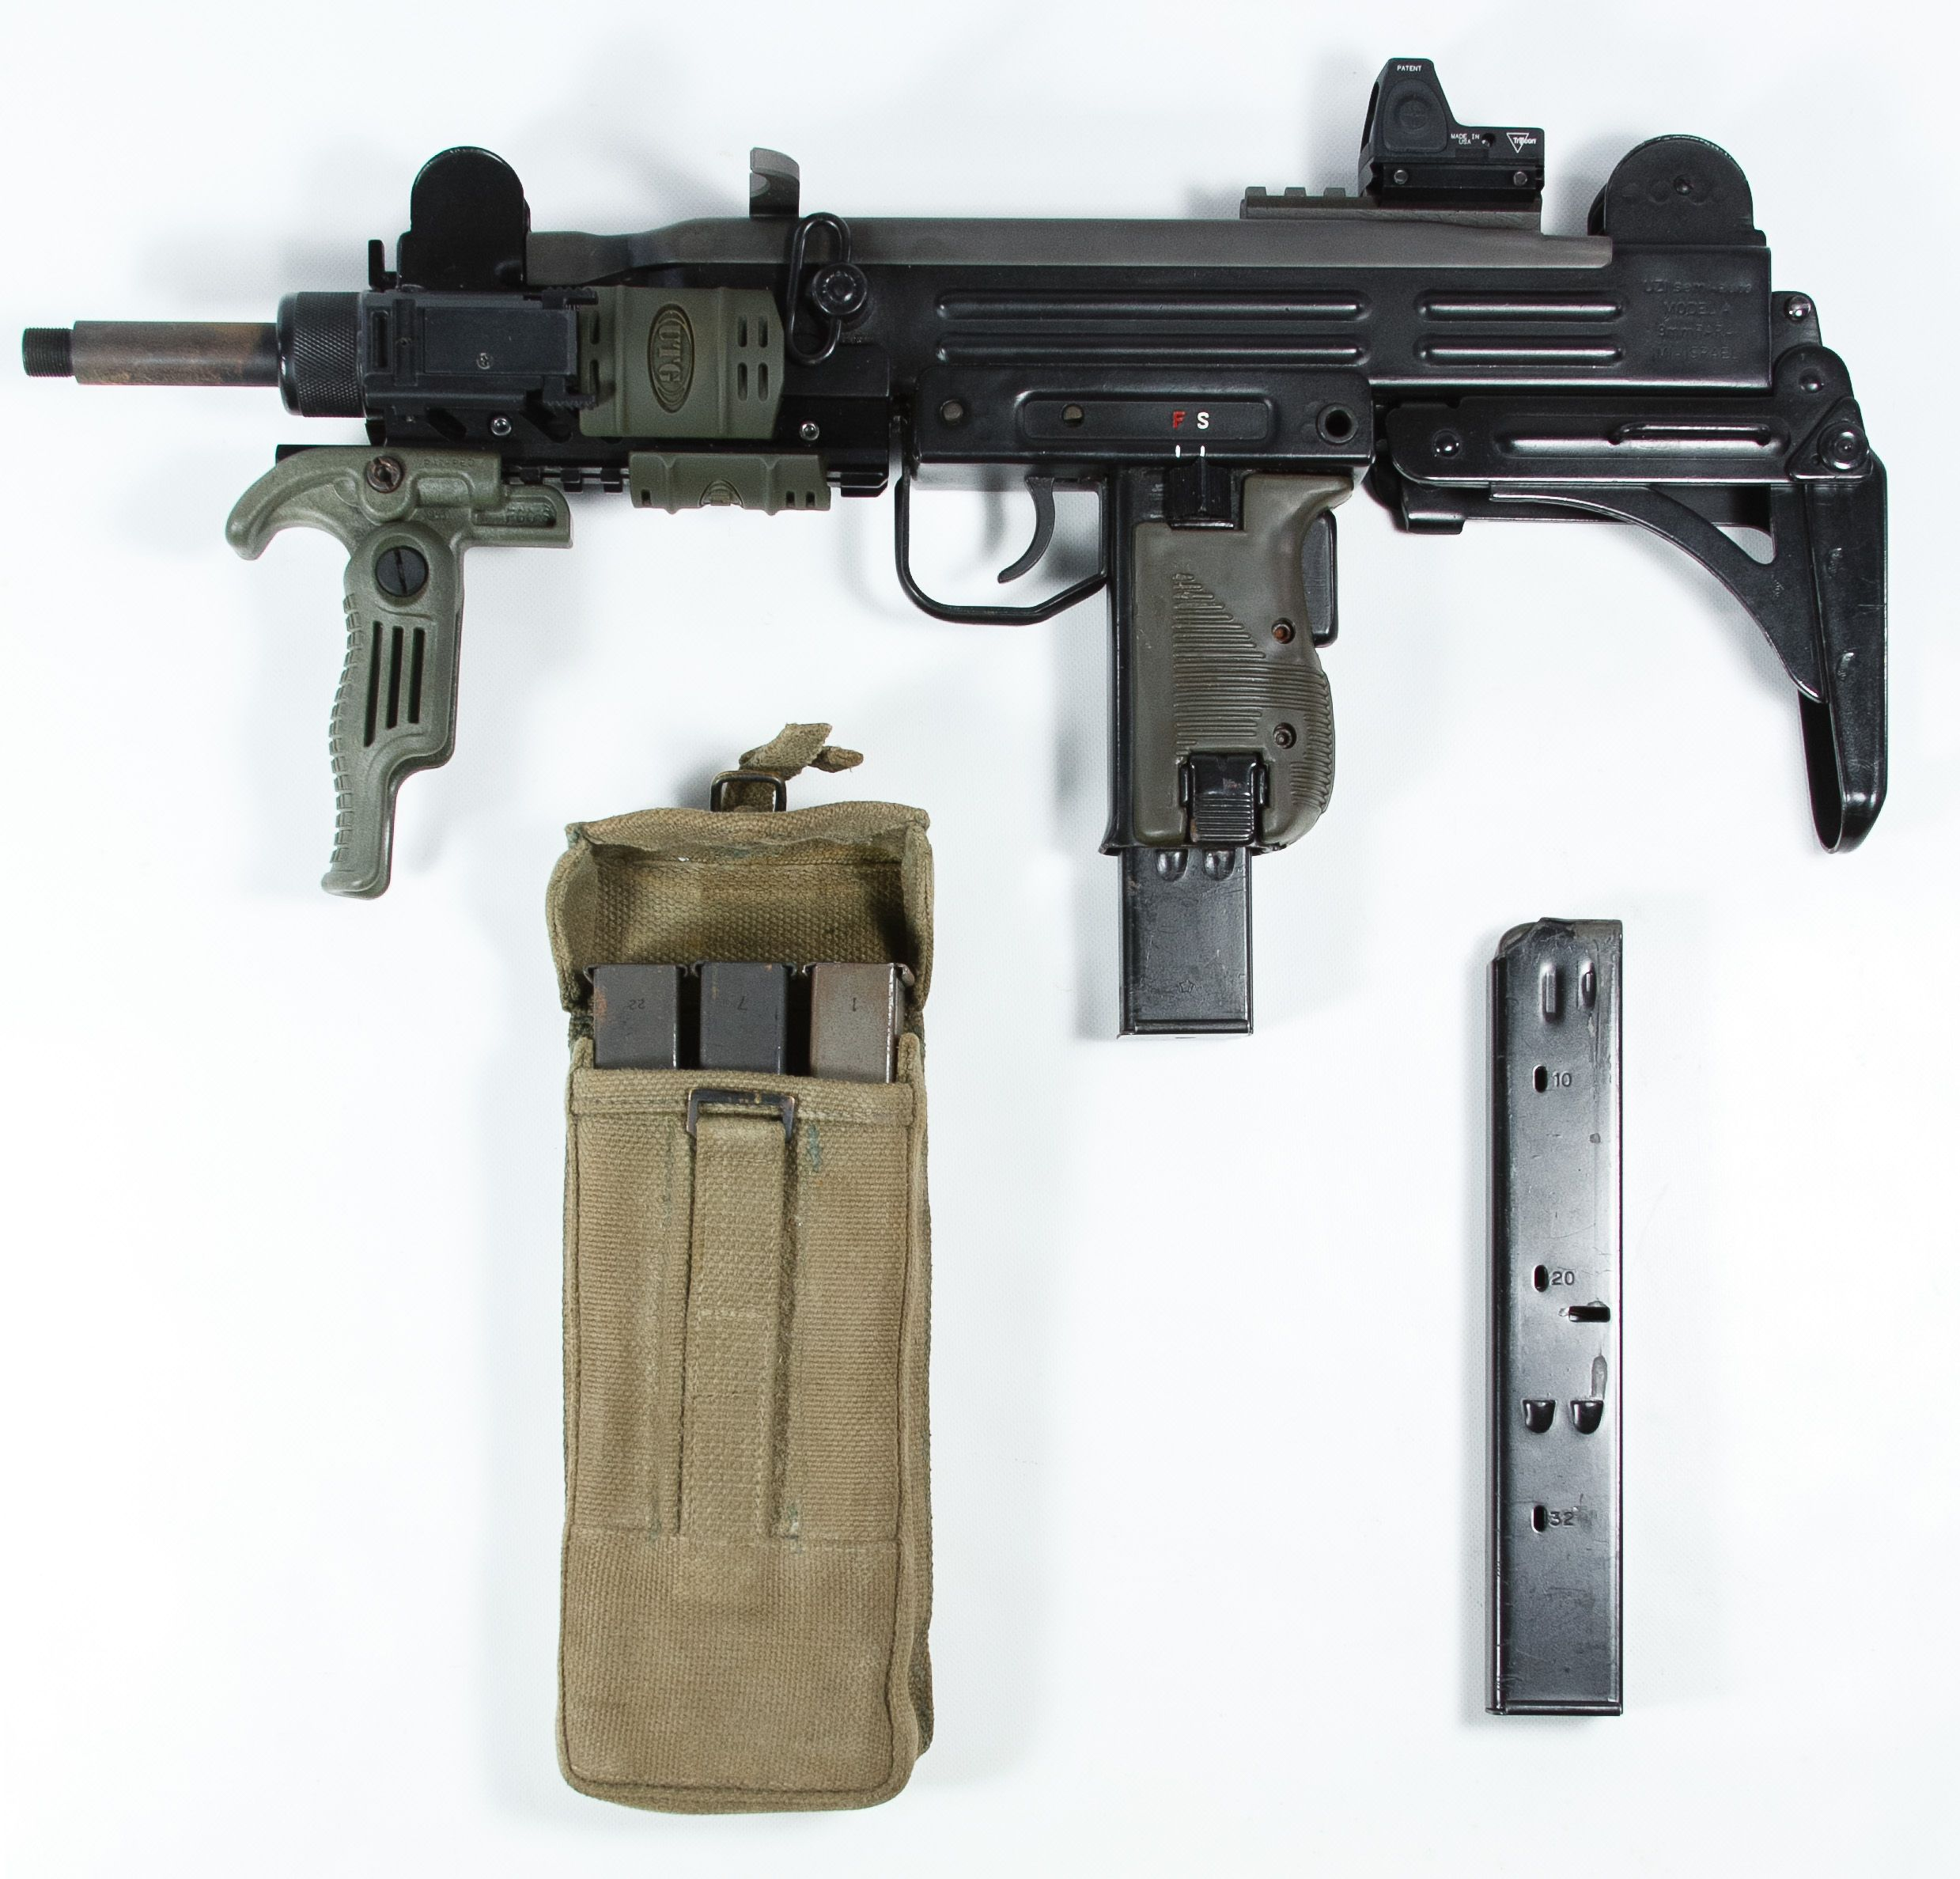 For sale trade imi uzi carbine made in israel 9mm - Lot Action Arms Uzi Model A Semi Automatic Carbine Serial Made In Israel Pre Ban Carbine With Folding Stock Including Five Magazines Military Magazine